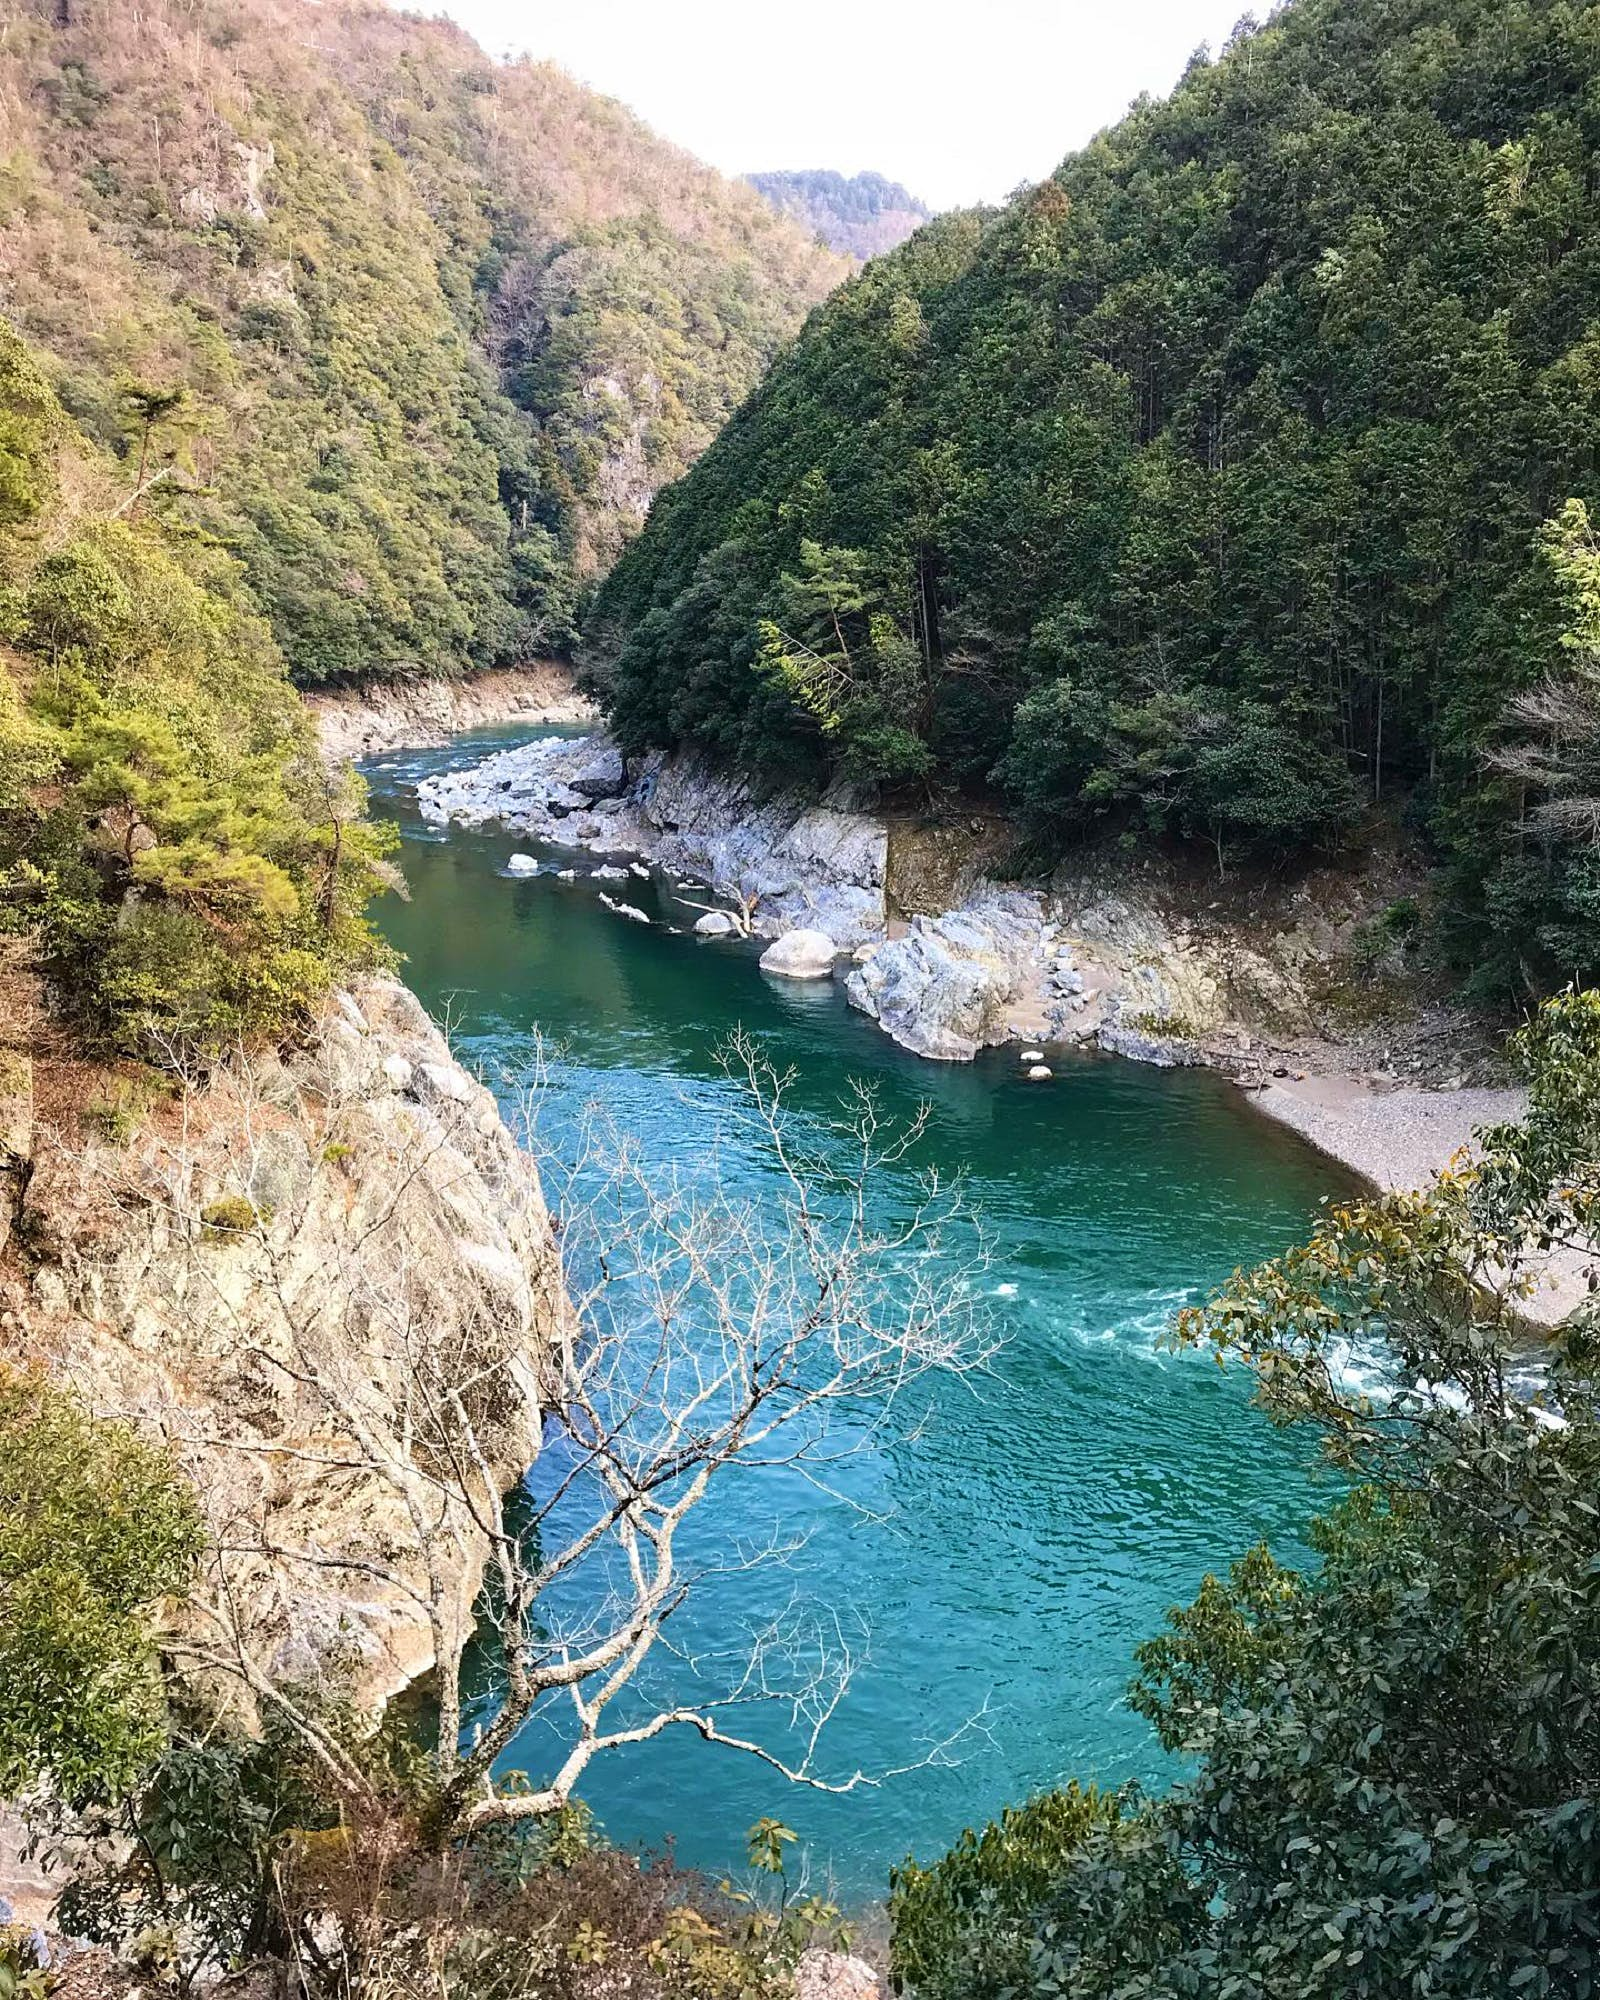 The dark greenish-blue waters of the Kiyotaki river bend around rocky banks flanked by thick forest.